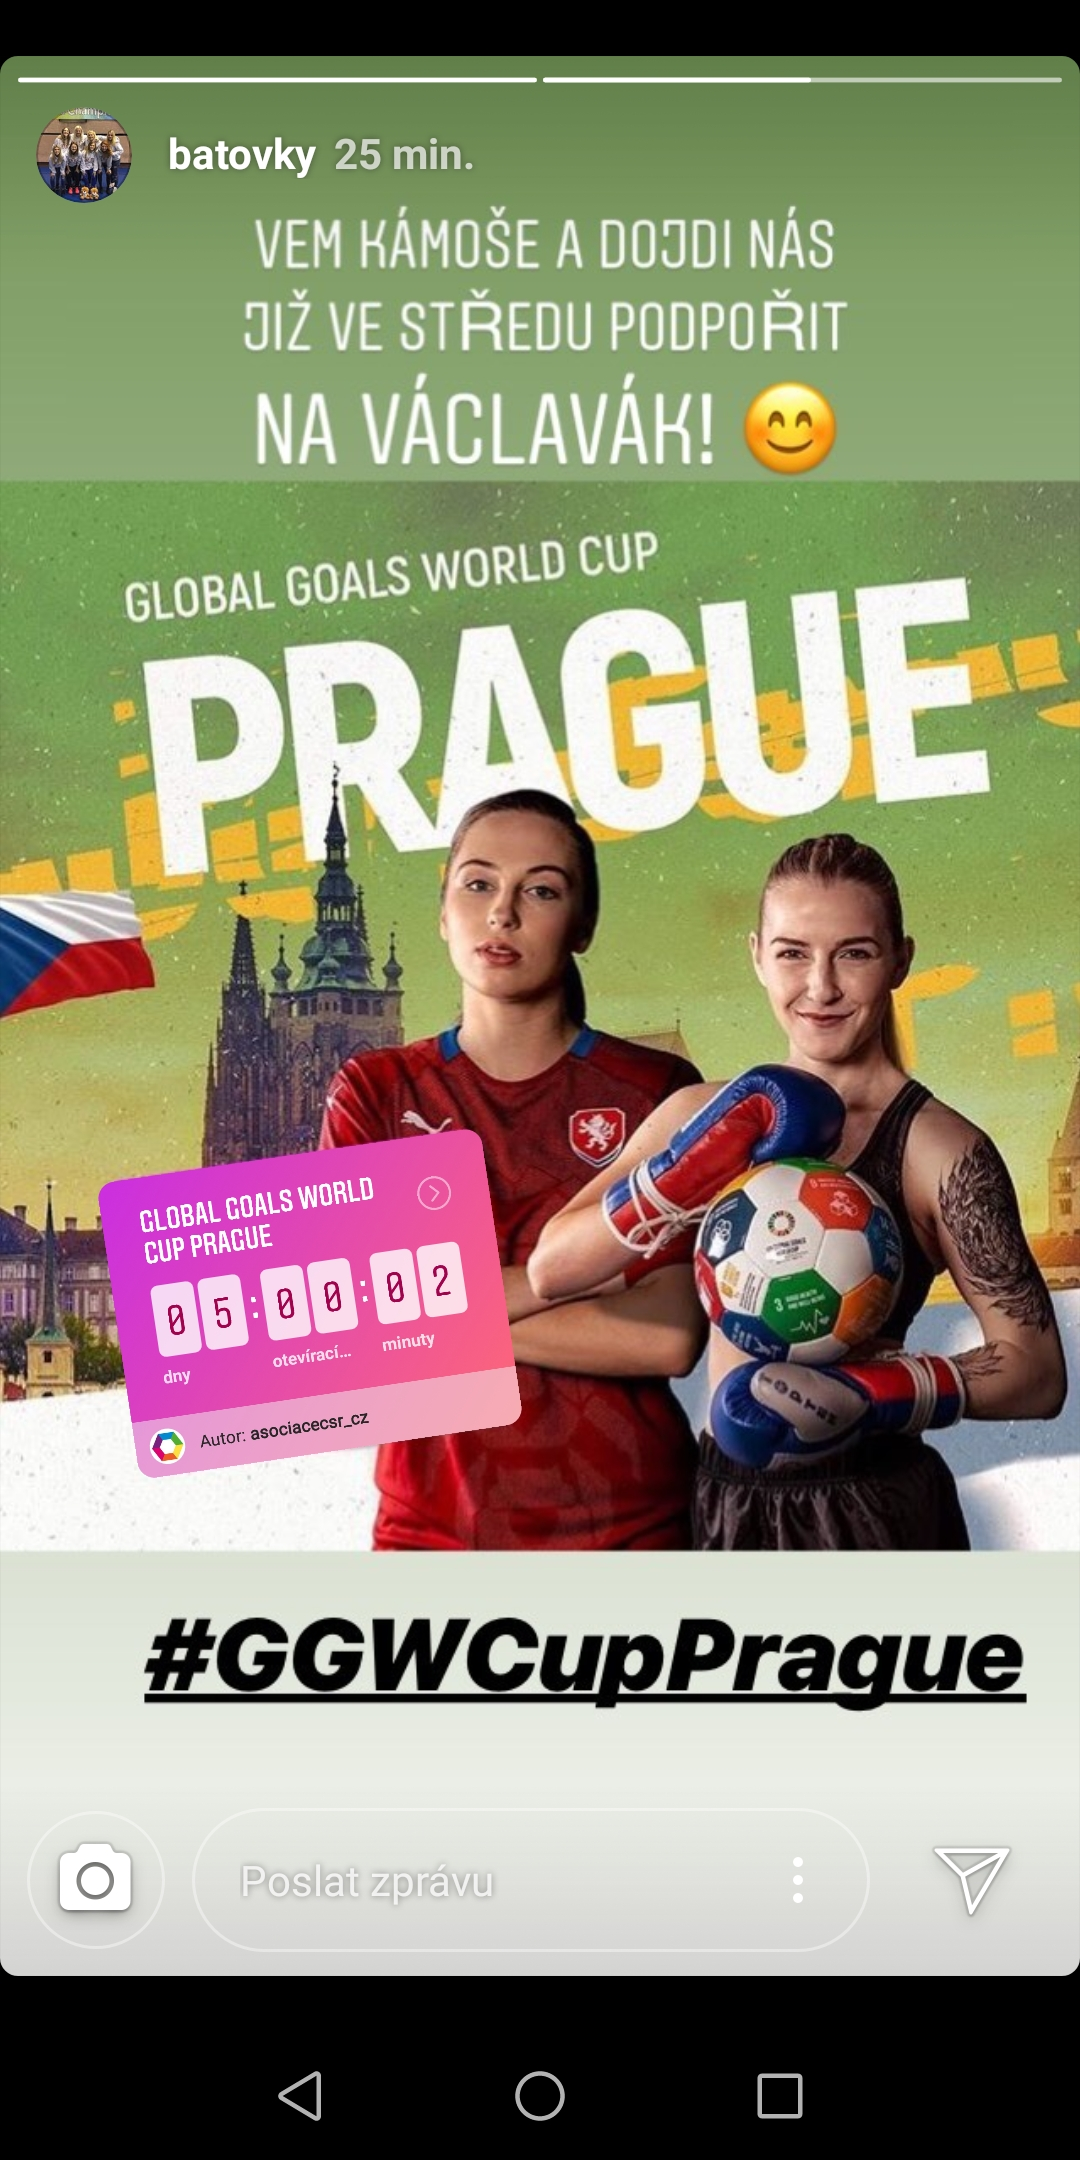 GGWCup Prague 2019 Screenshot_20190524-135754.jpg